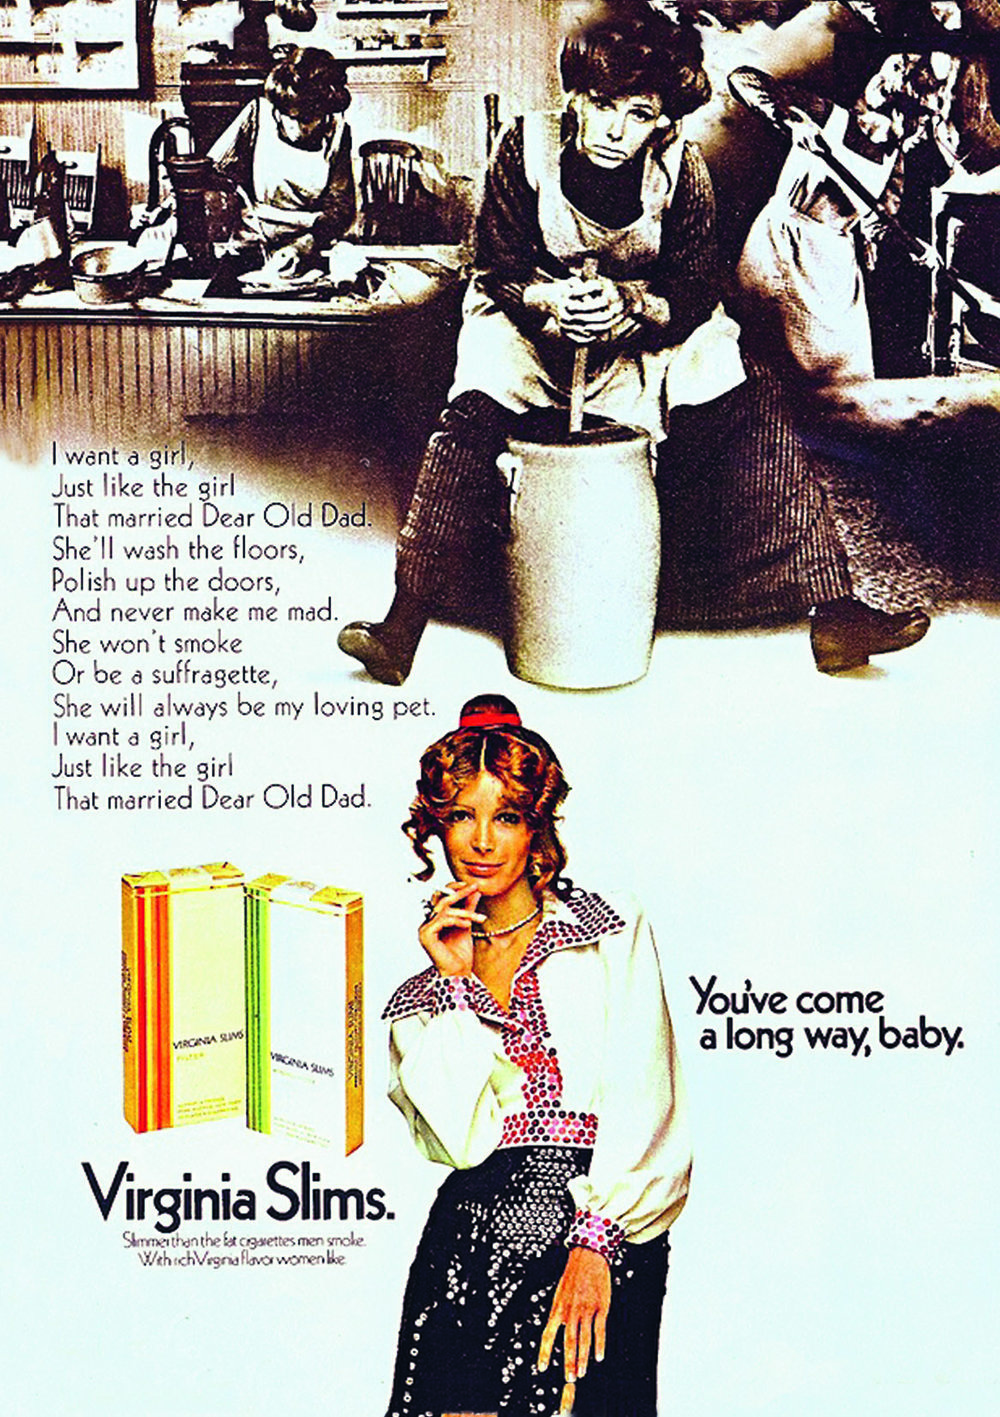 'You've come a long way, baby', Virginia Slims, 1968